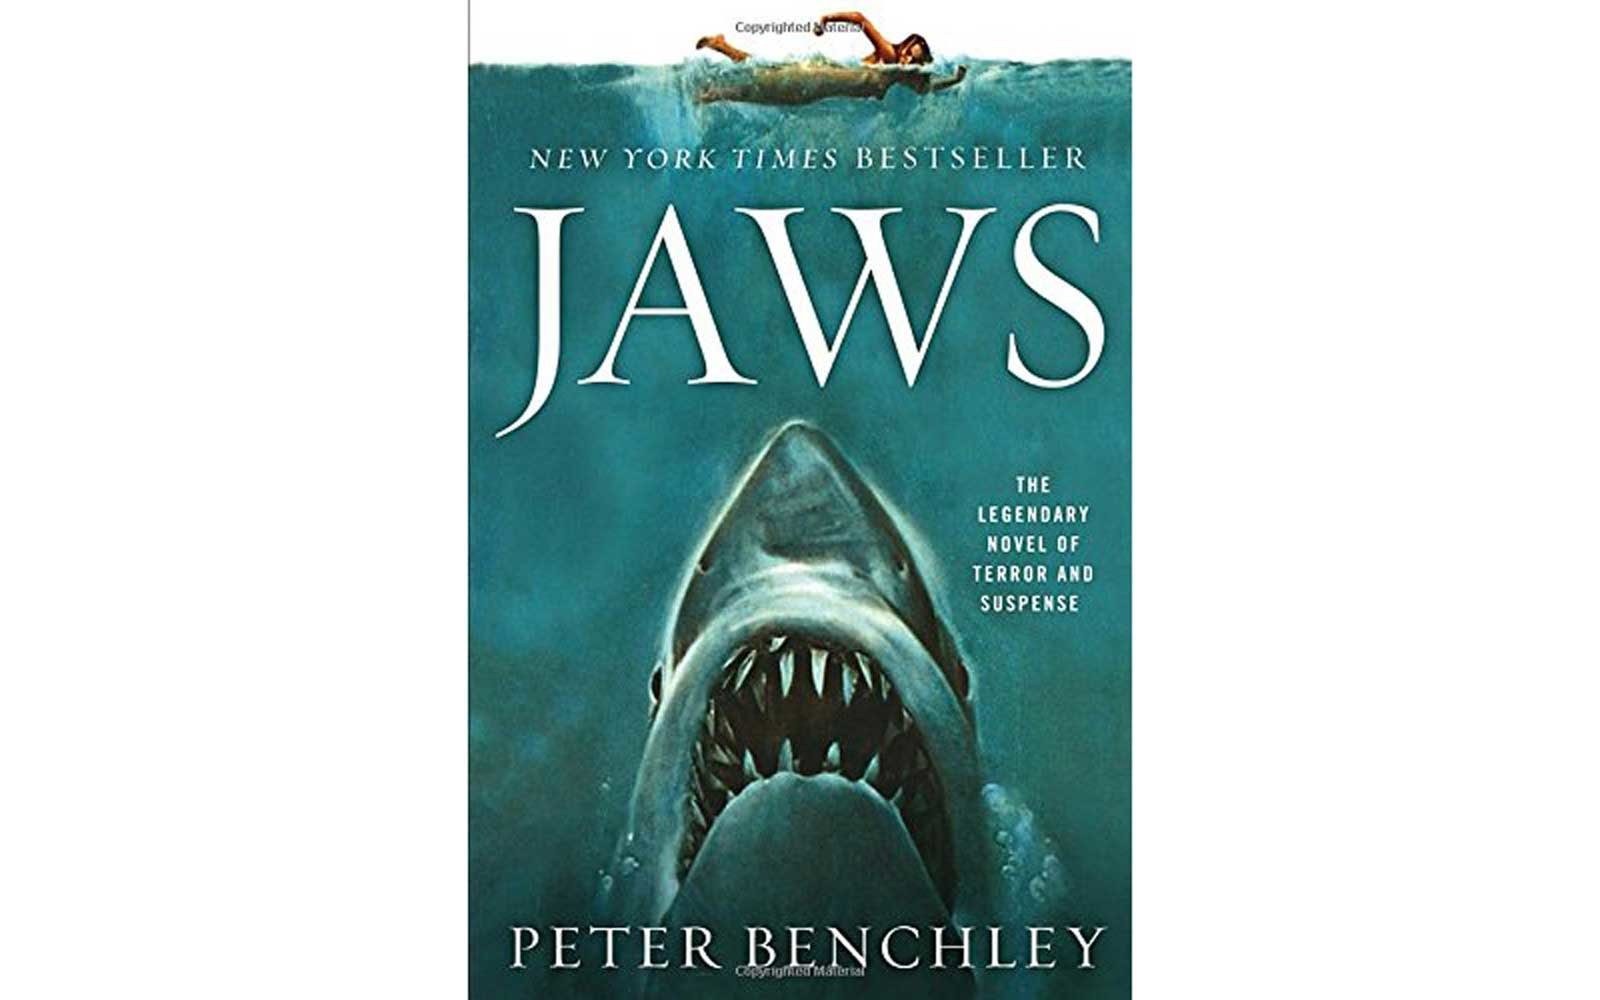 'Jaws' by Peter Benchley (1974)